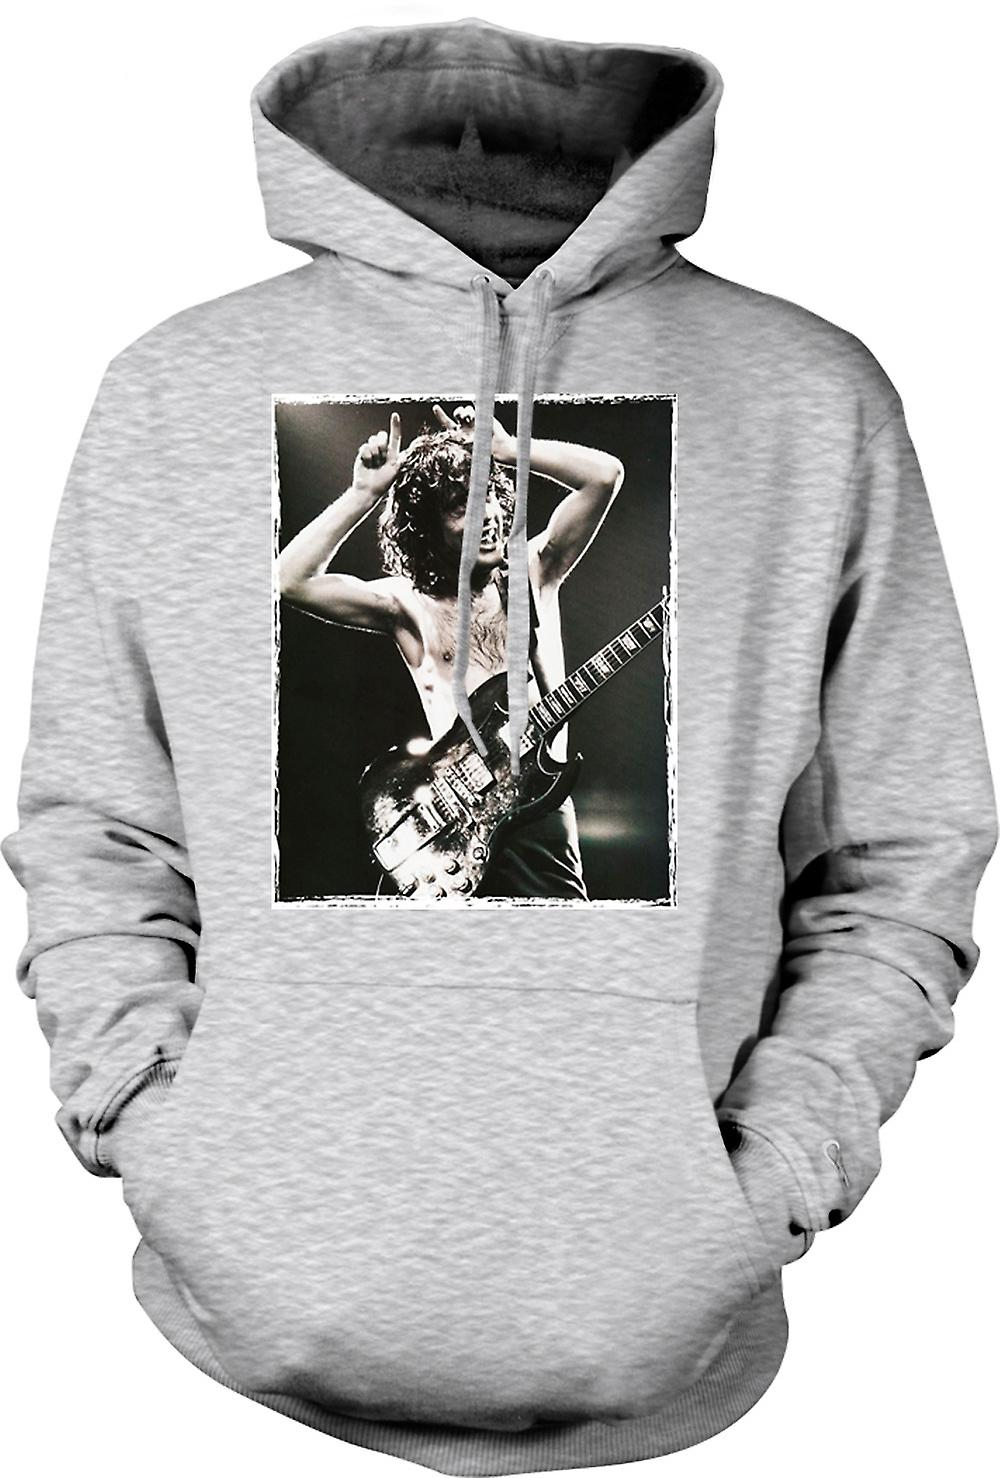 Mens Hoodie - AC/DC - Angus Young Portrait